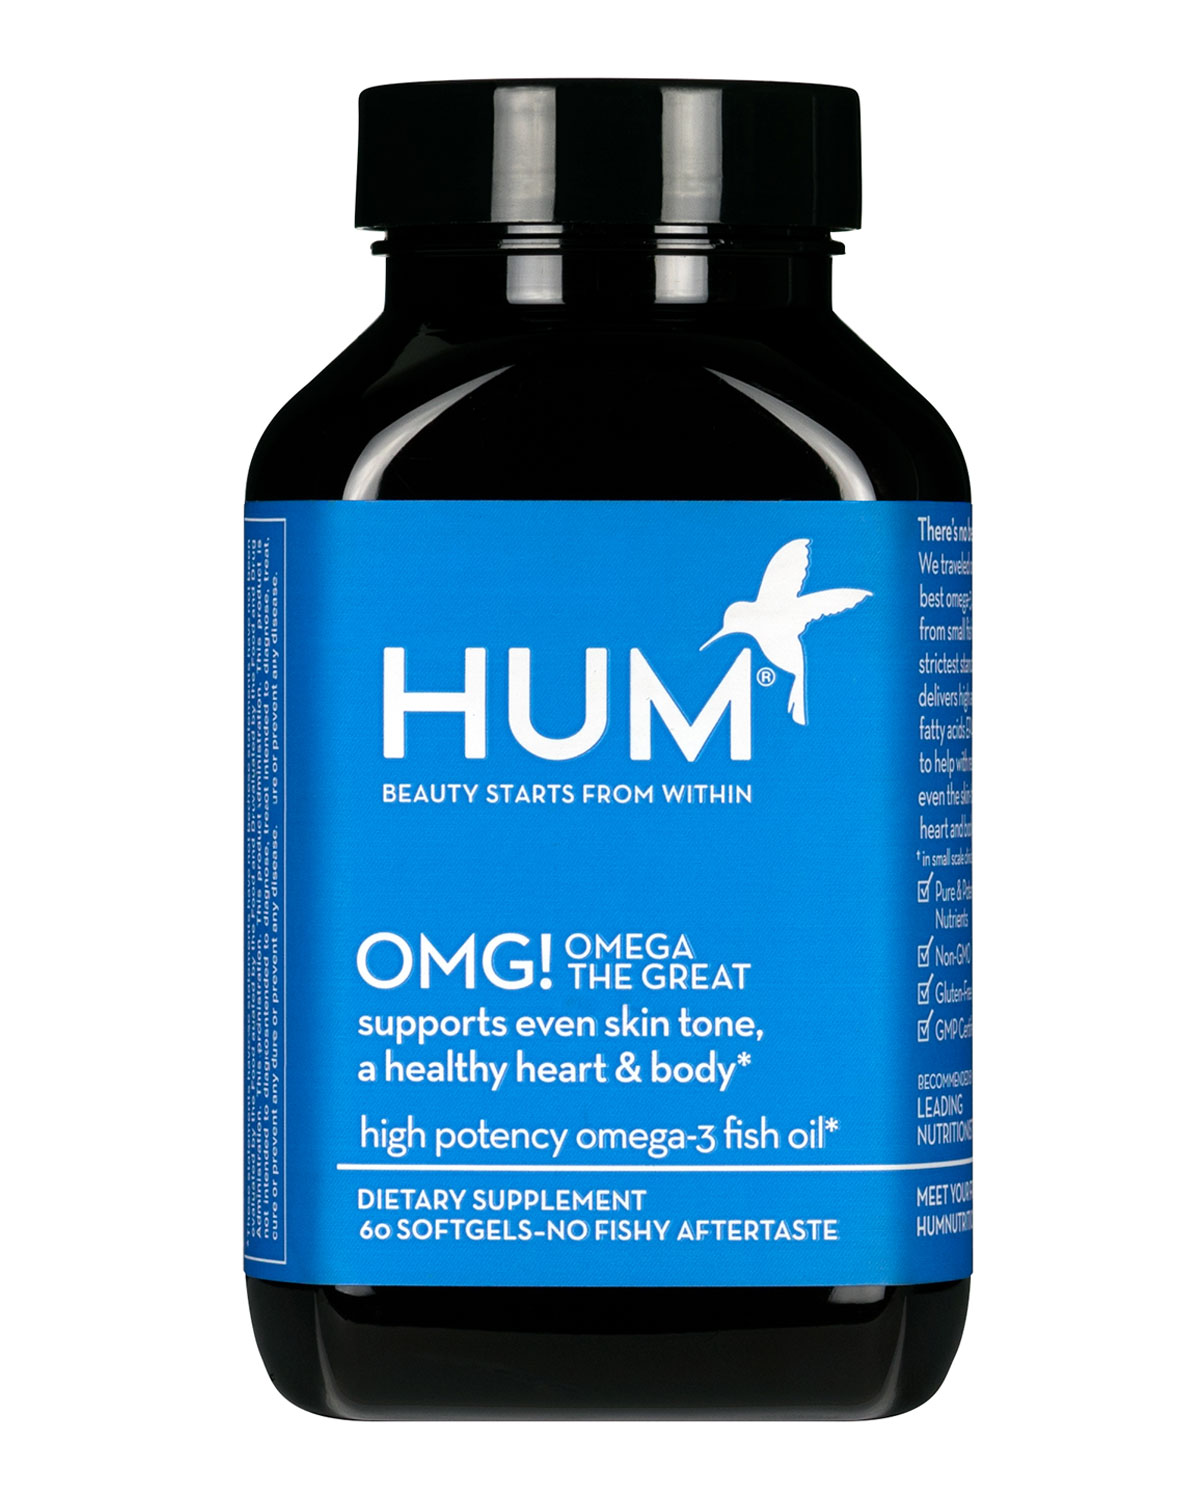 OMG! Omega The Great & #153 Supplement